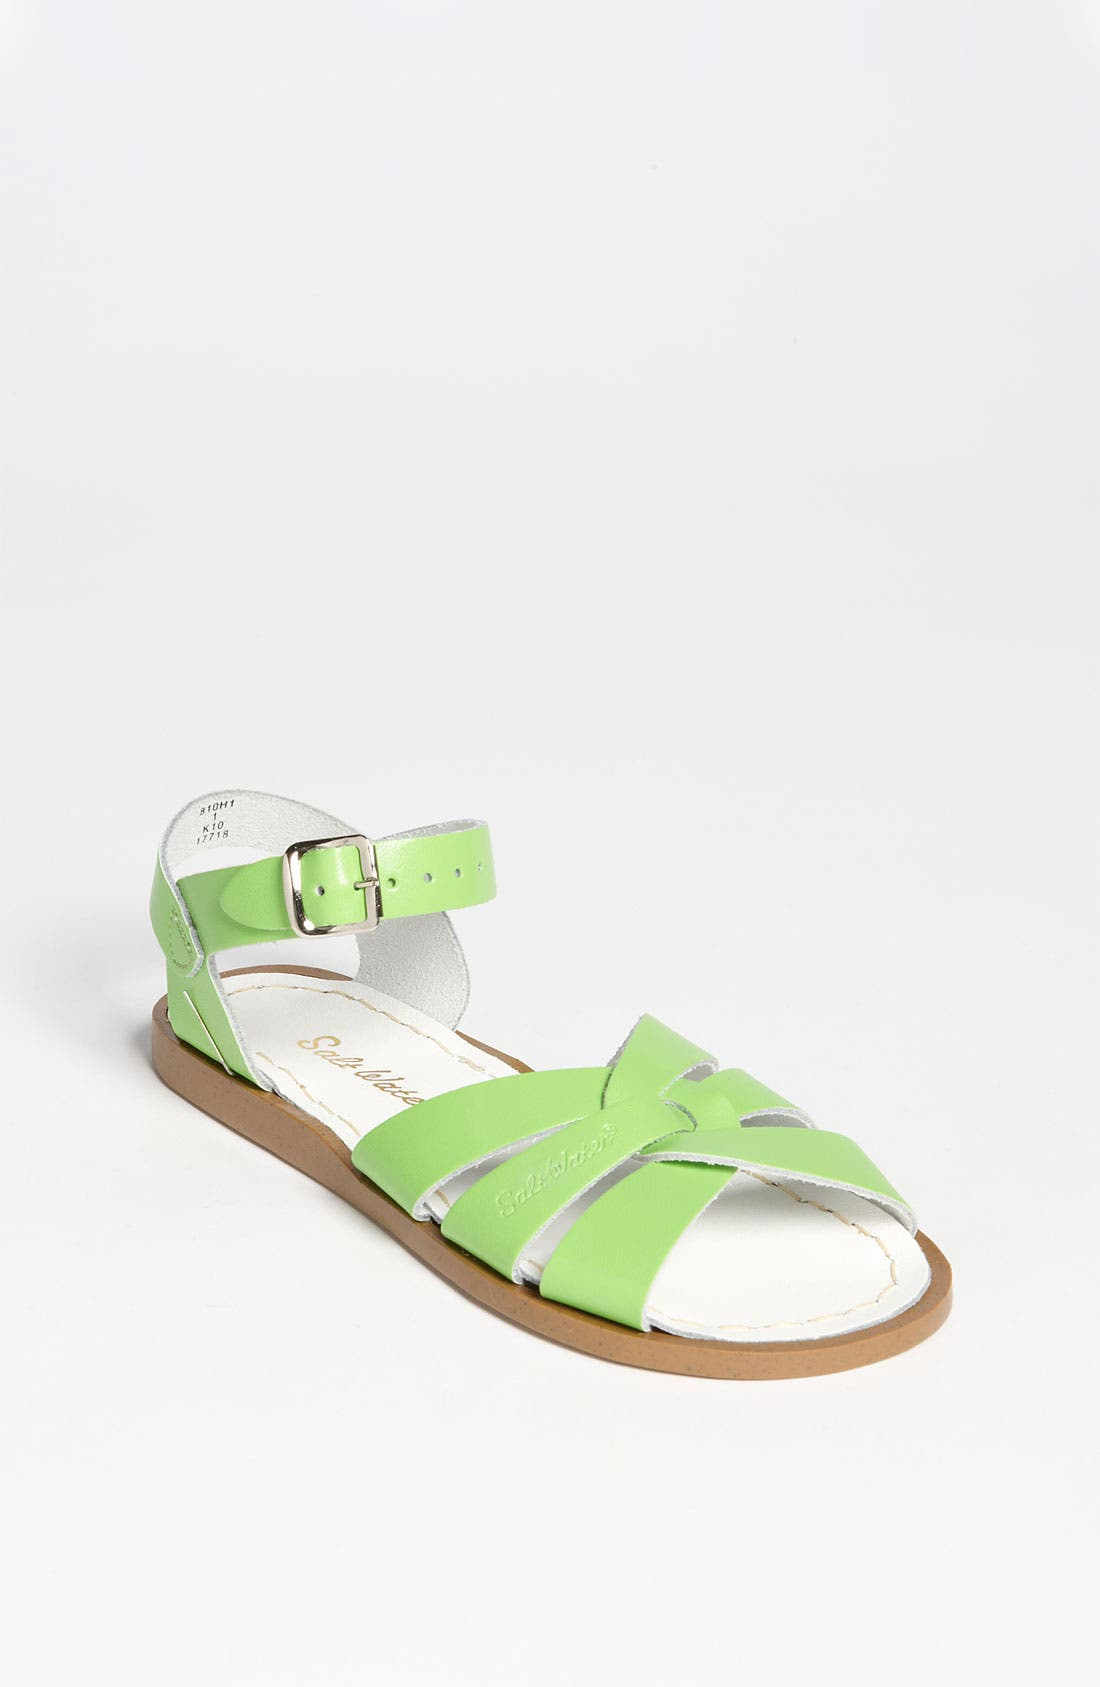 Alternate Image 1 Selected - Salt Water Sandals by Hoy Sandal (Baby, Walker, Toddler, Little Kid & Big Kid)